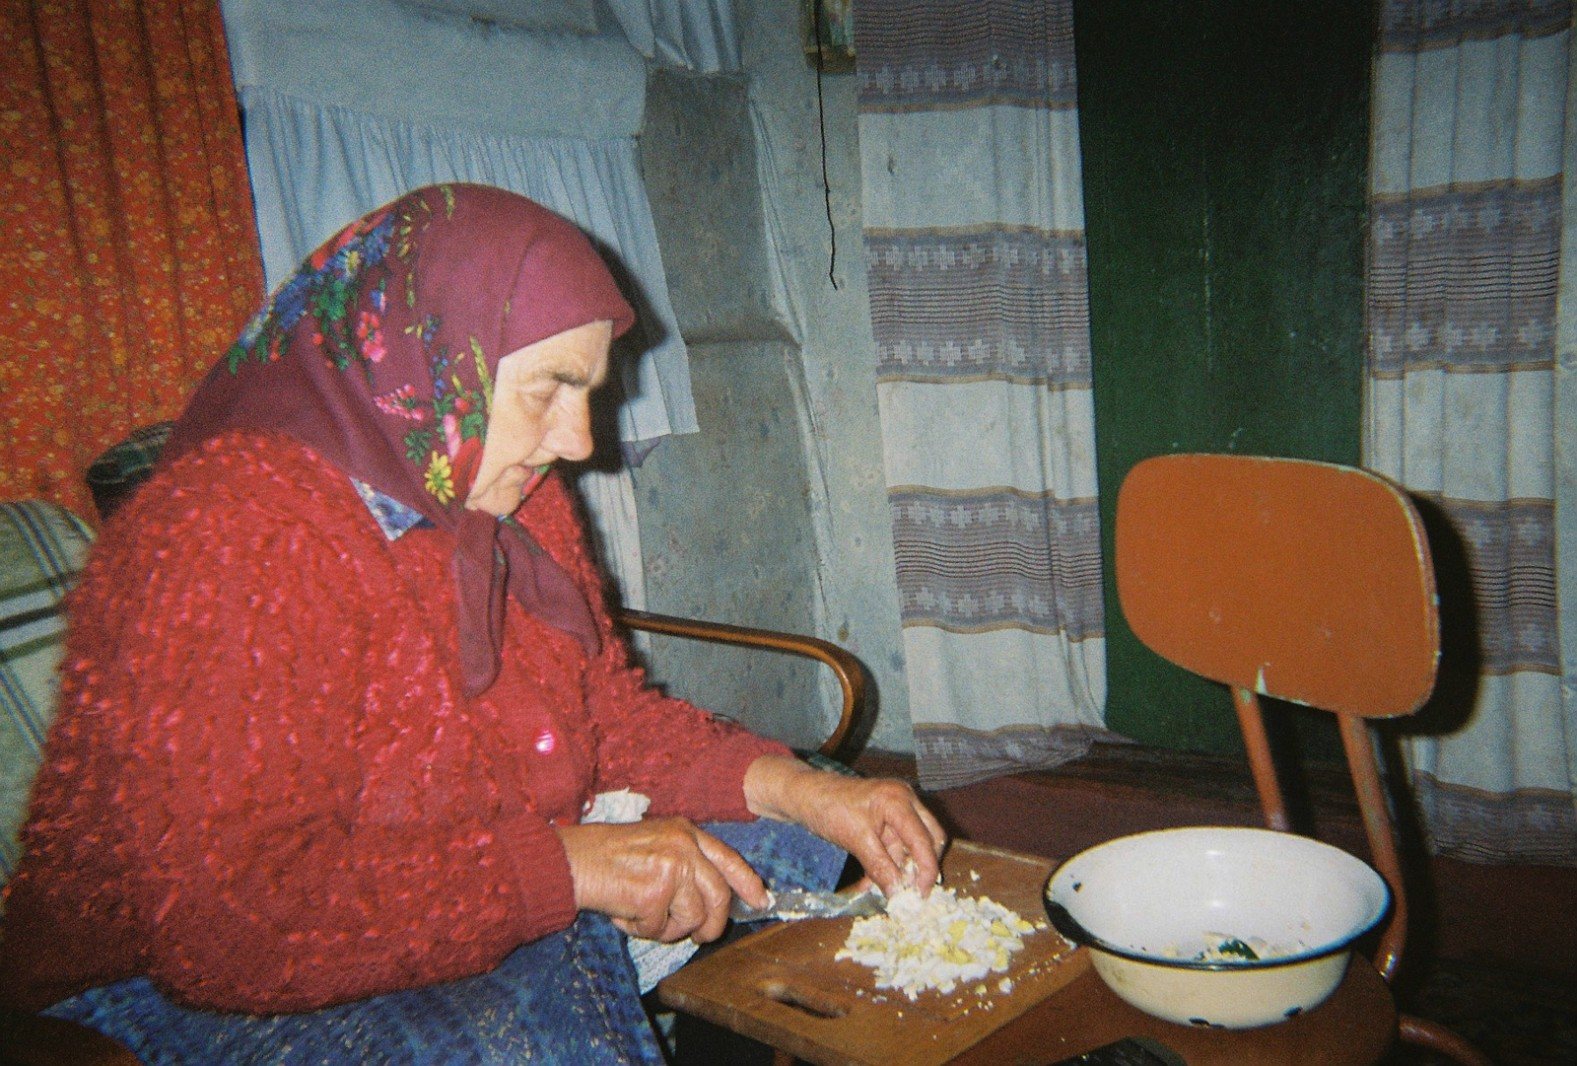 An elderly lady prepares home-grown food in her home near Chernobyl